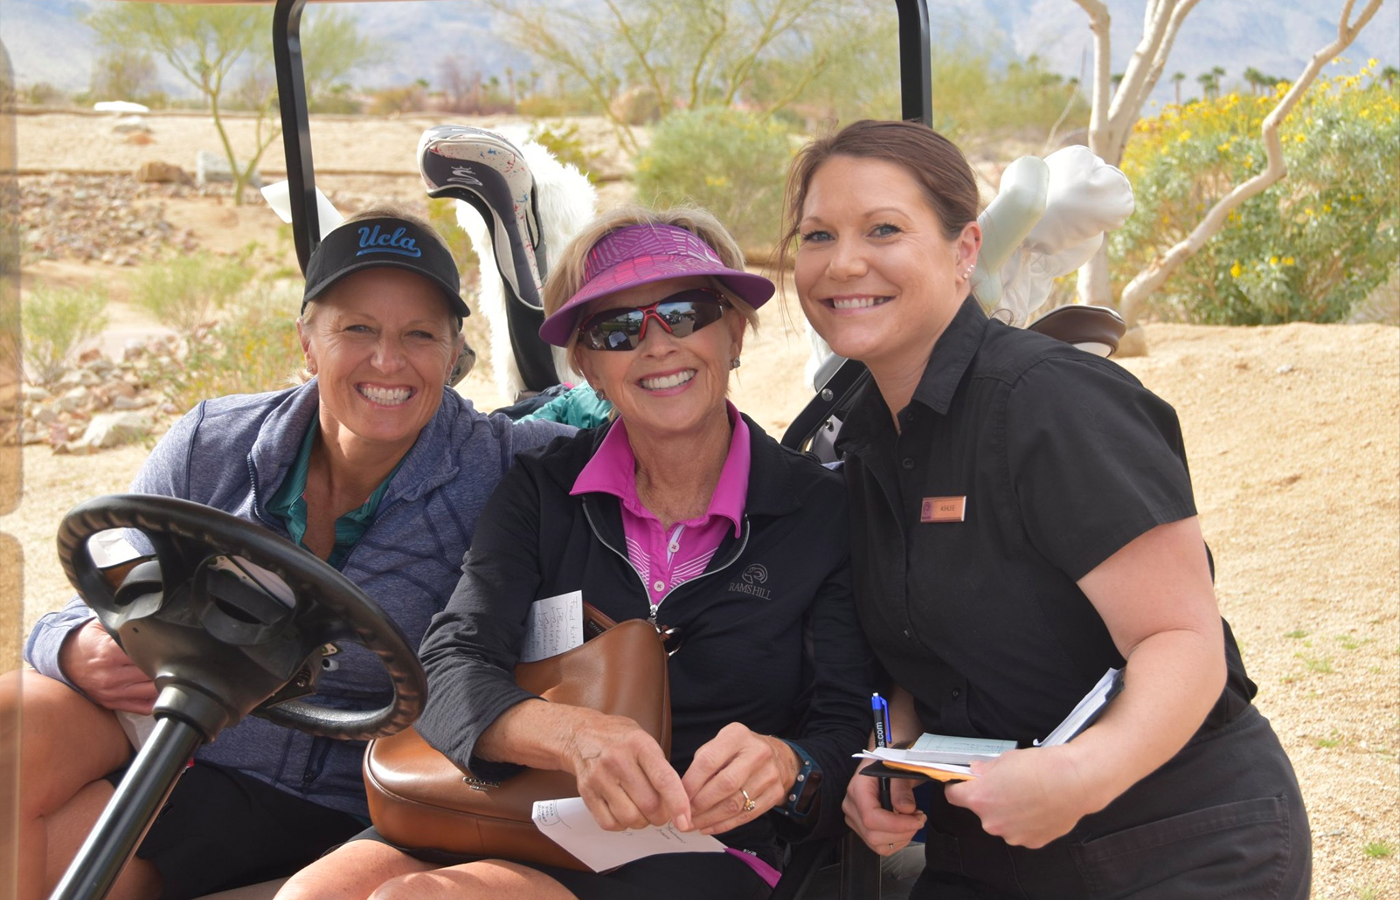 female rams hill employees on golf cart smiling on course